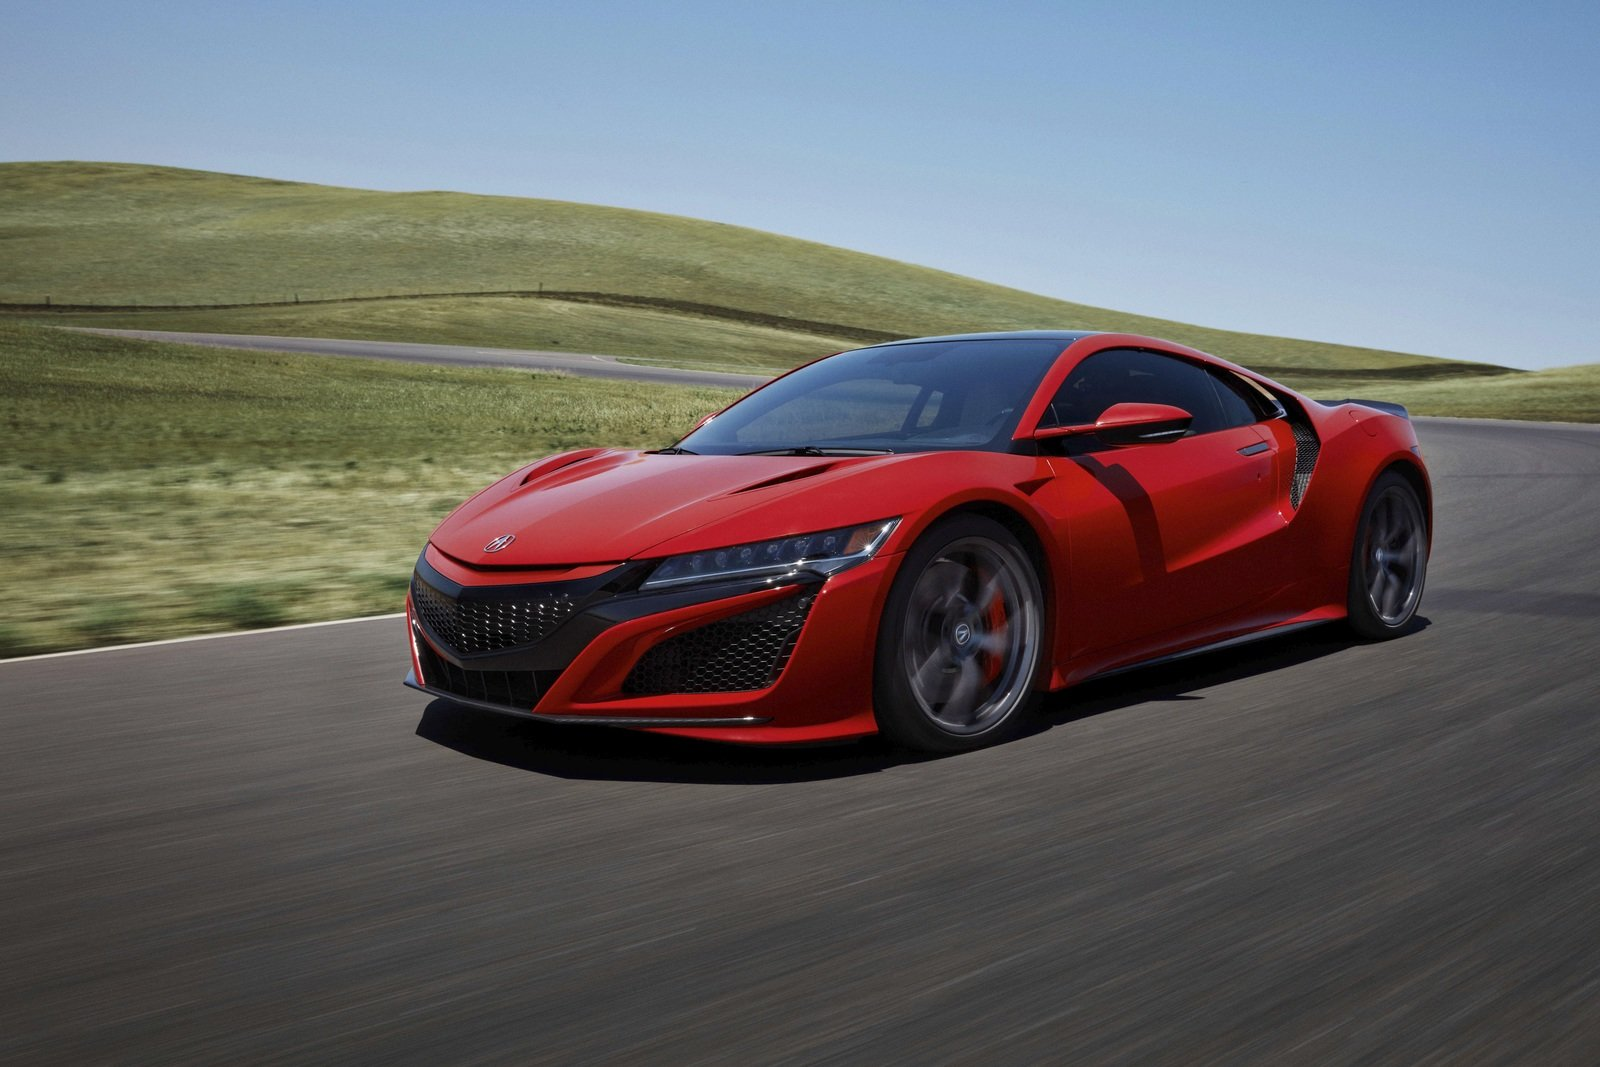 Acura Nsx Latest News Reviews Specifications Prices Photos And Videos Top Speed